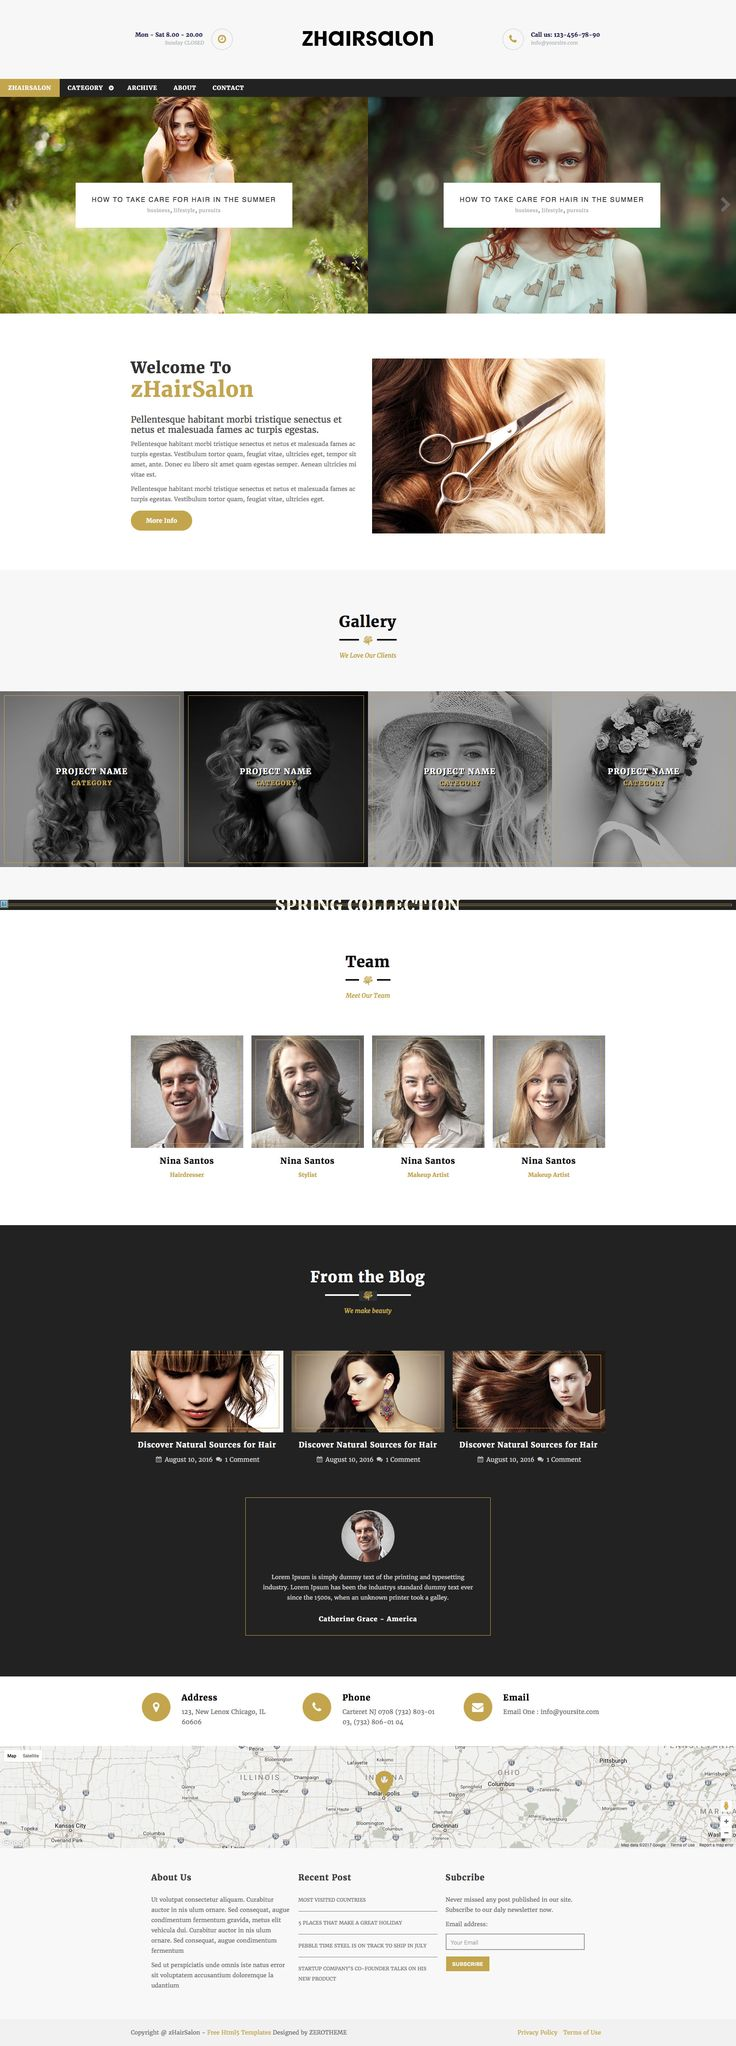 zHairSalon is a clean free HTML5 business website template, the perfect template for hair salons. zHairSalon template comes with 4 pages (Home Page, Single Page, Archive Page, Contact Page). It is fully responsive, Retina ready and uses custom framework.